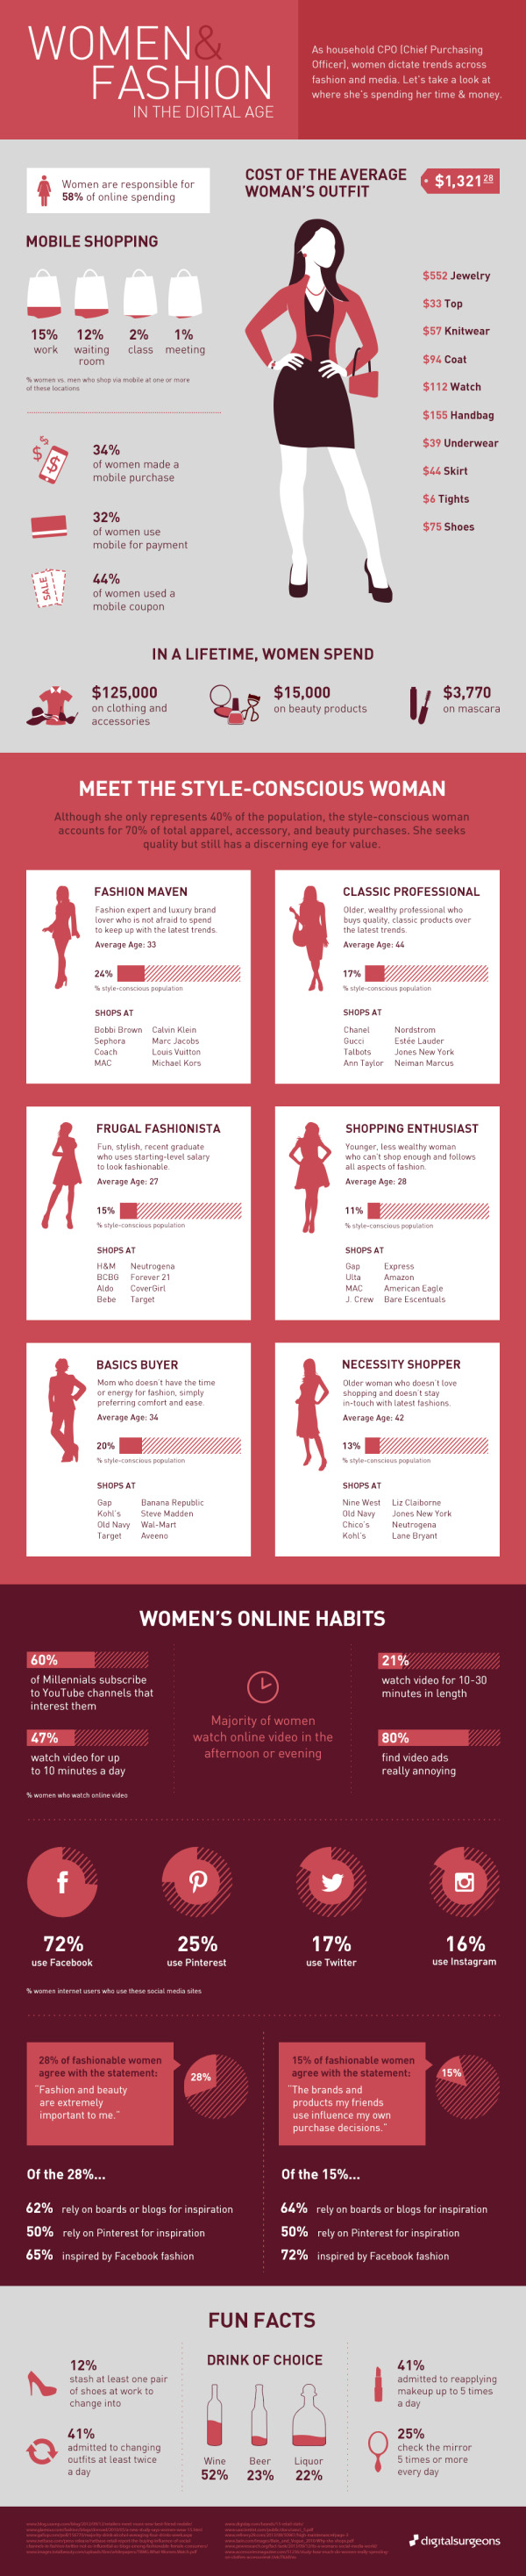 Women and Fashion In the Digital Age infographic